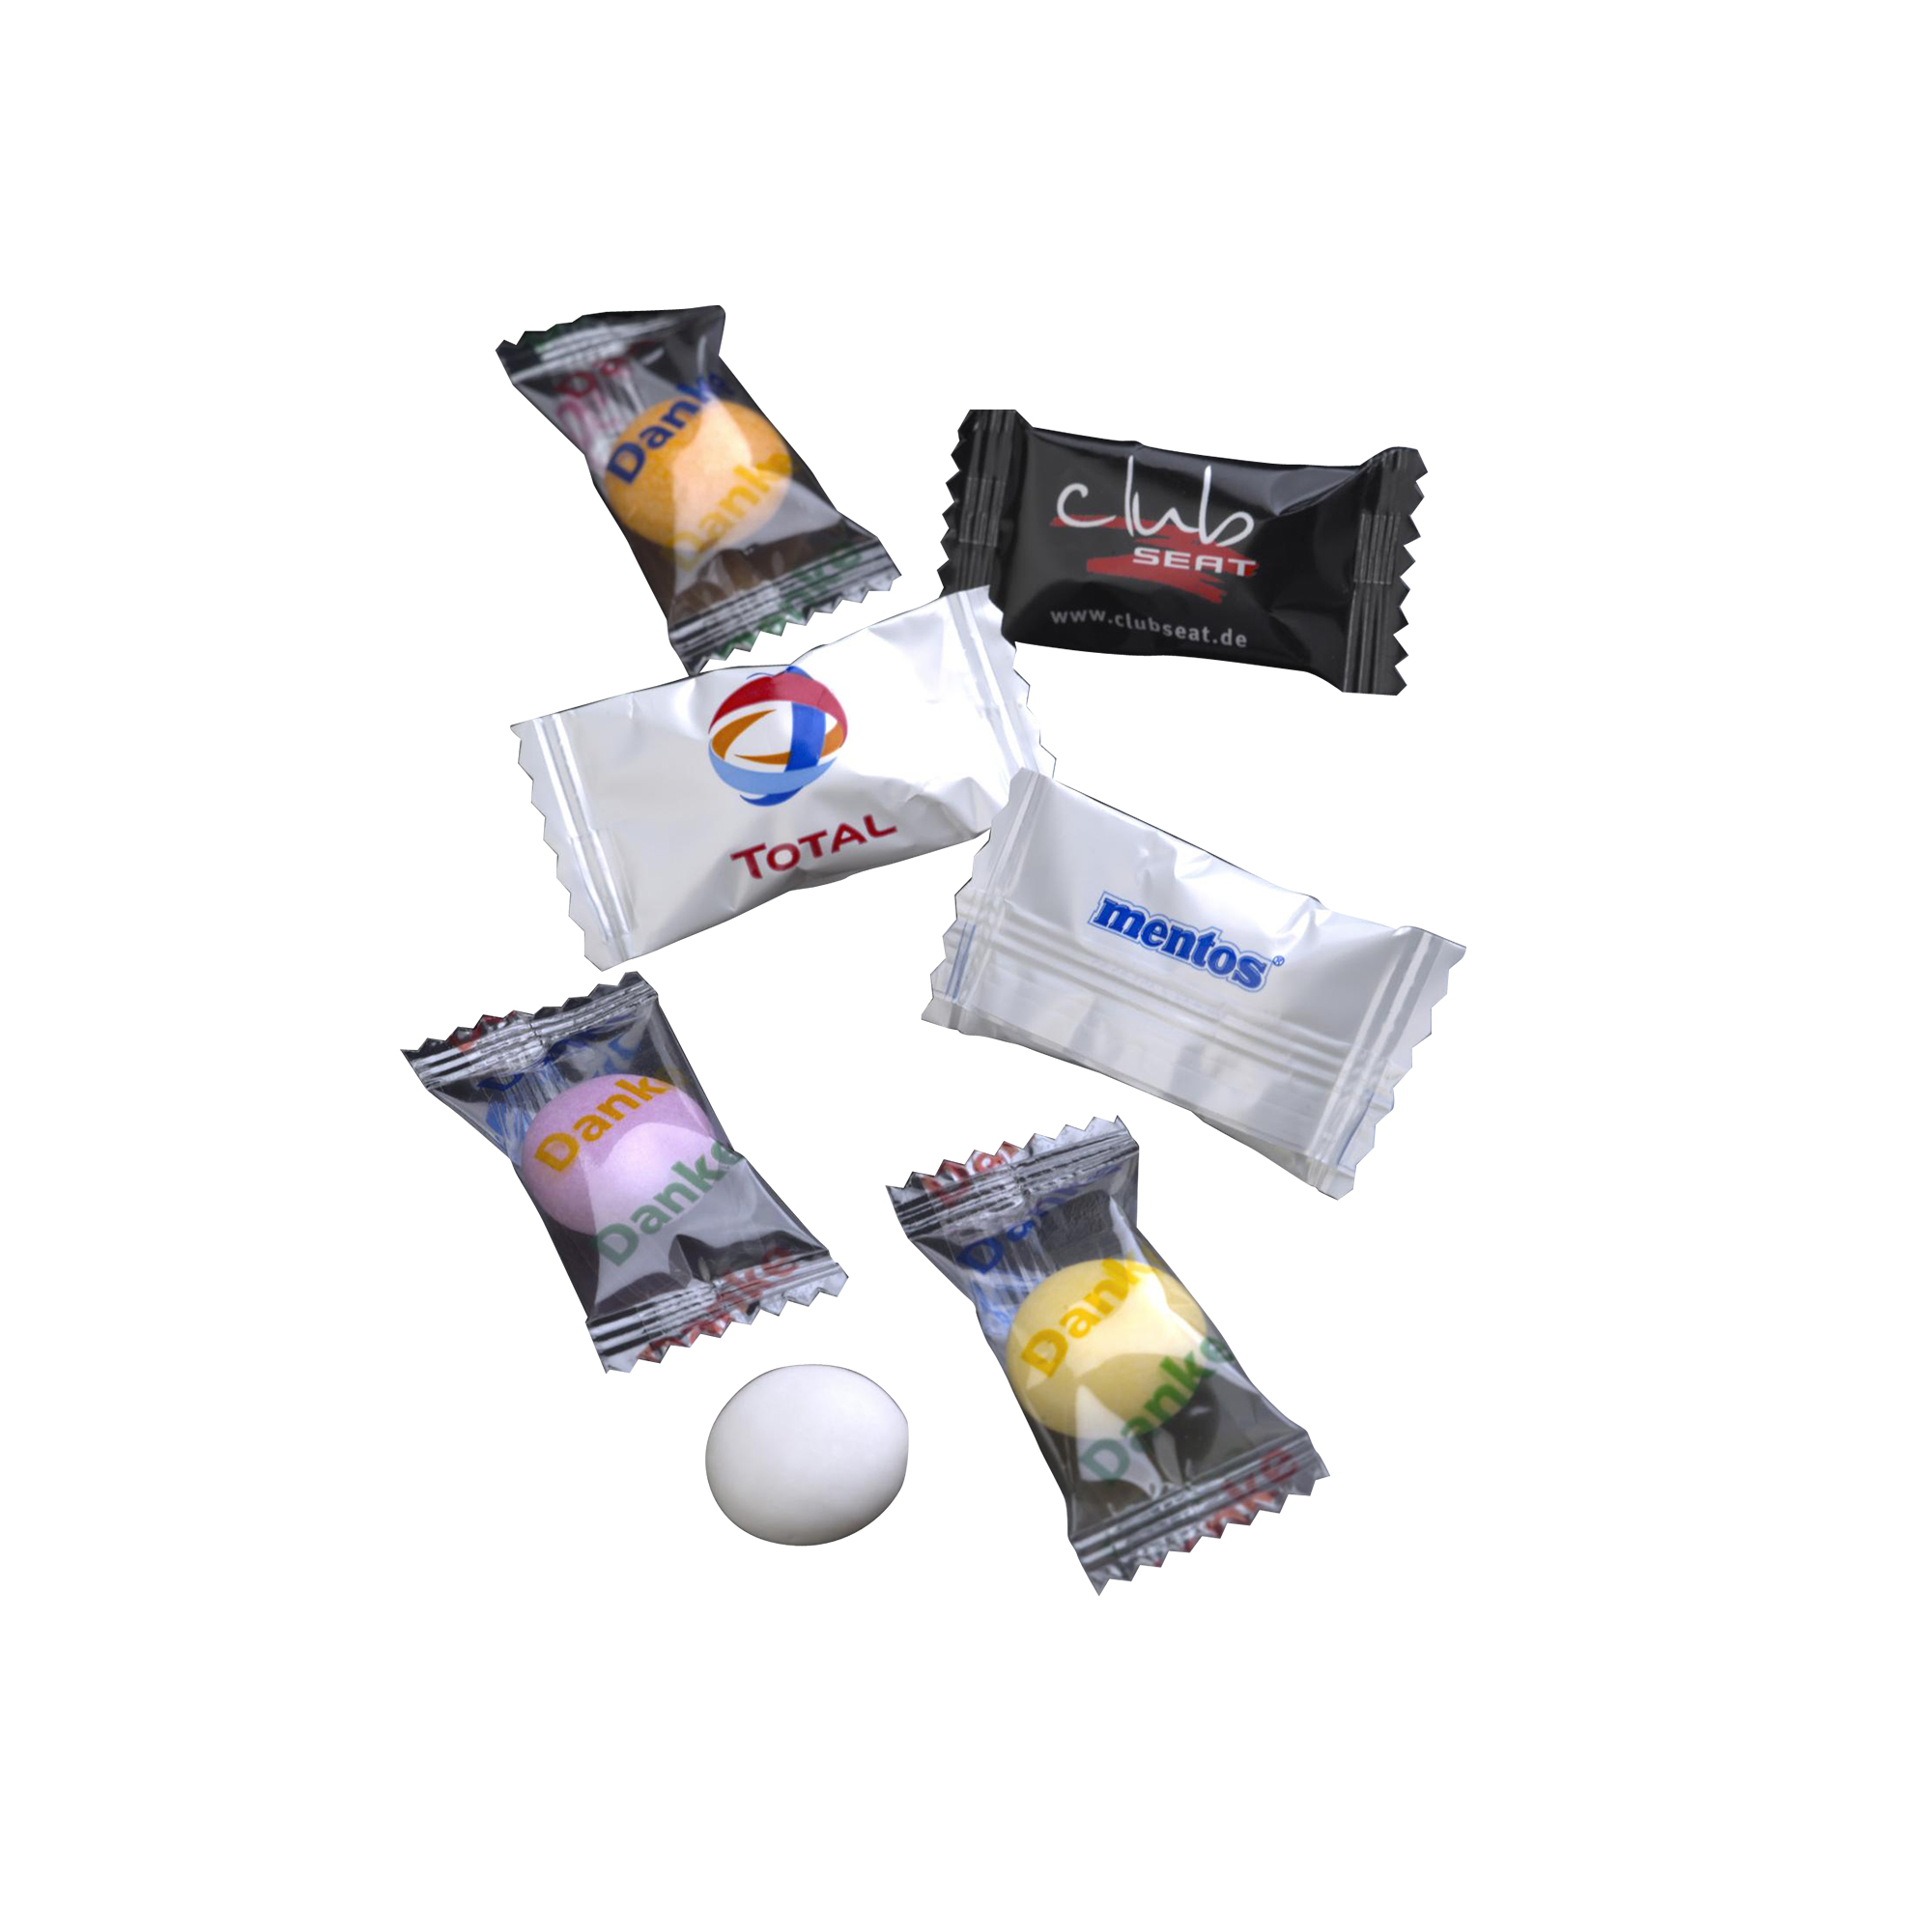 76 sweets Flowpack mentos